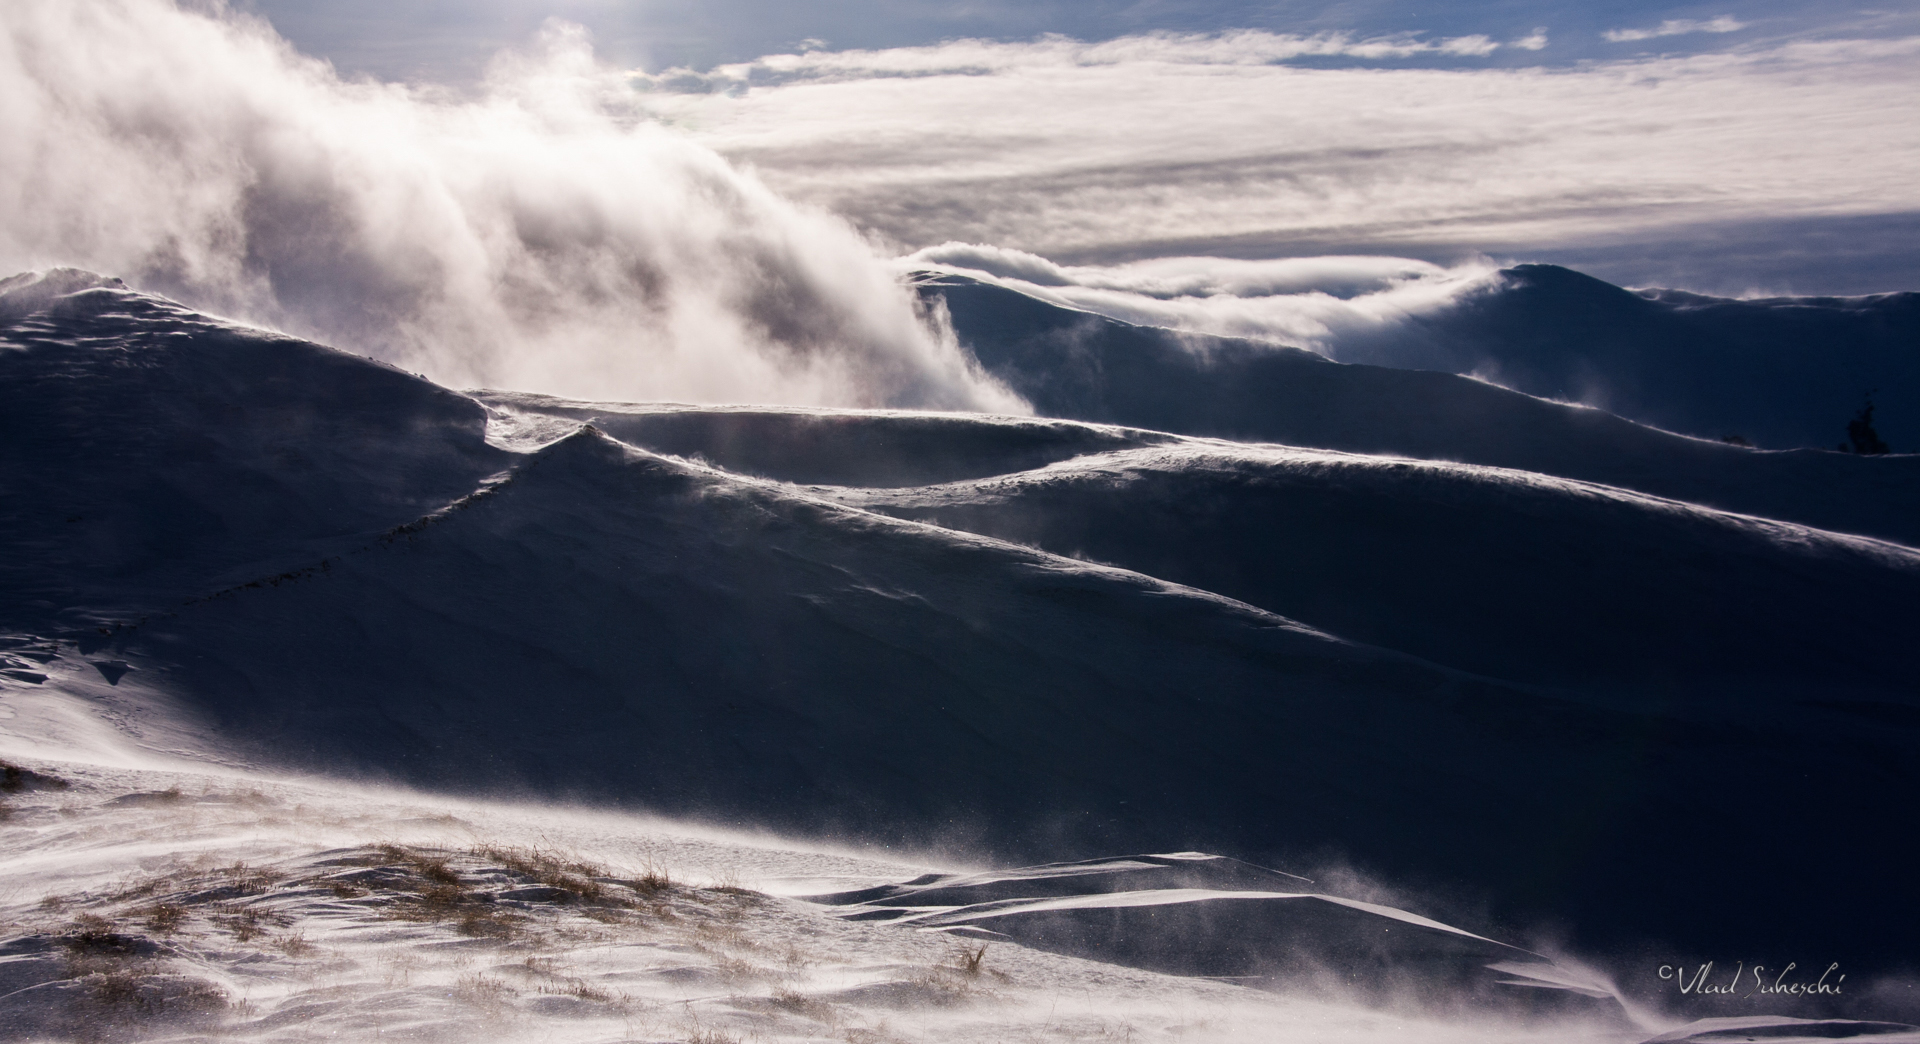 Winter Storm, Baiului Mountains The Carpathians Romania